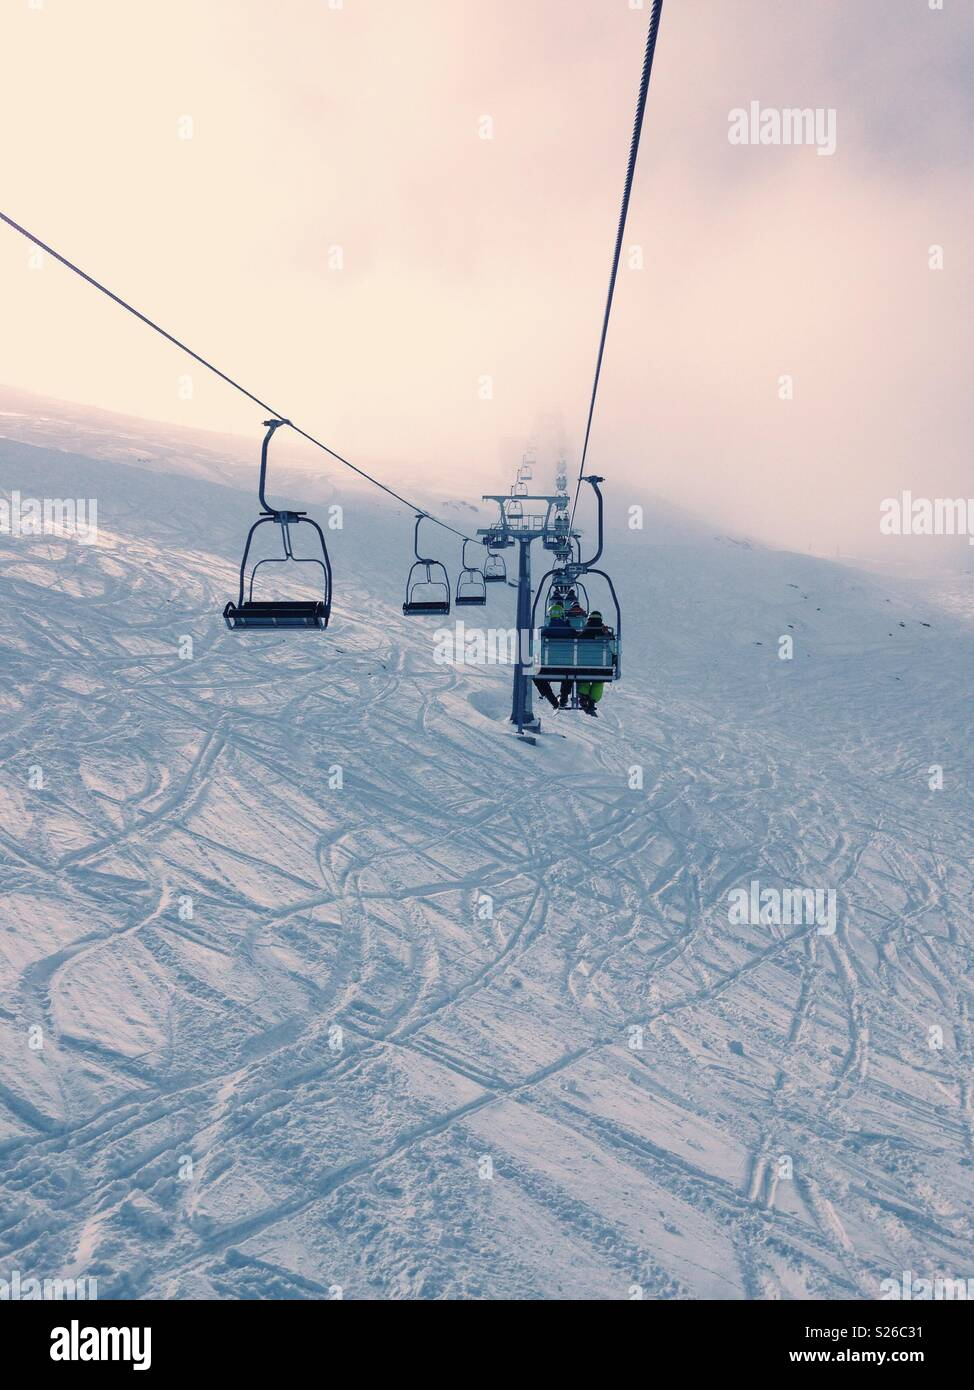 A ski-lift into the clouds - Stock Image